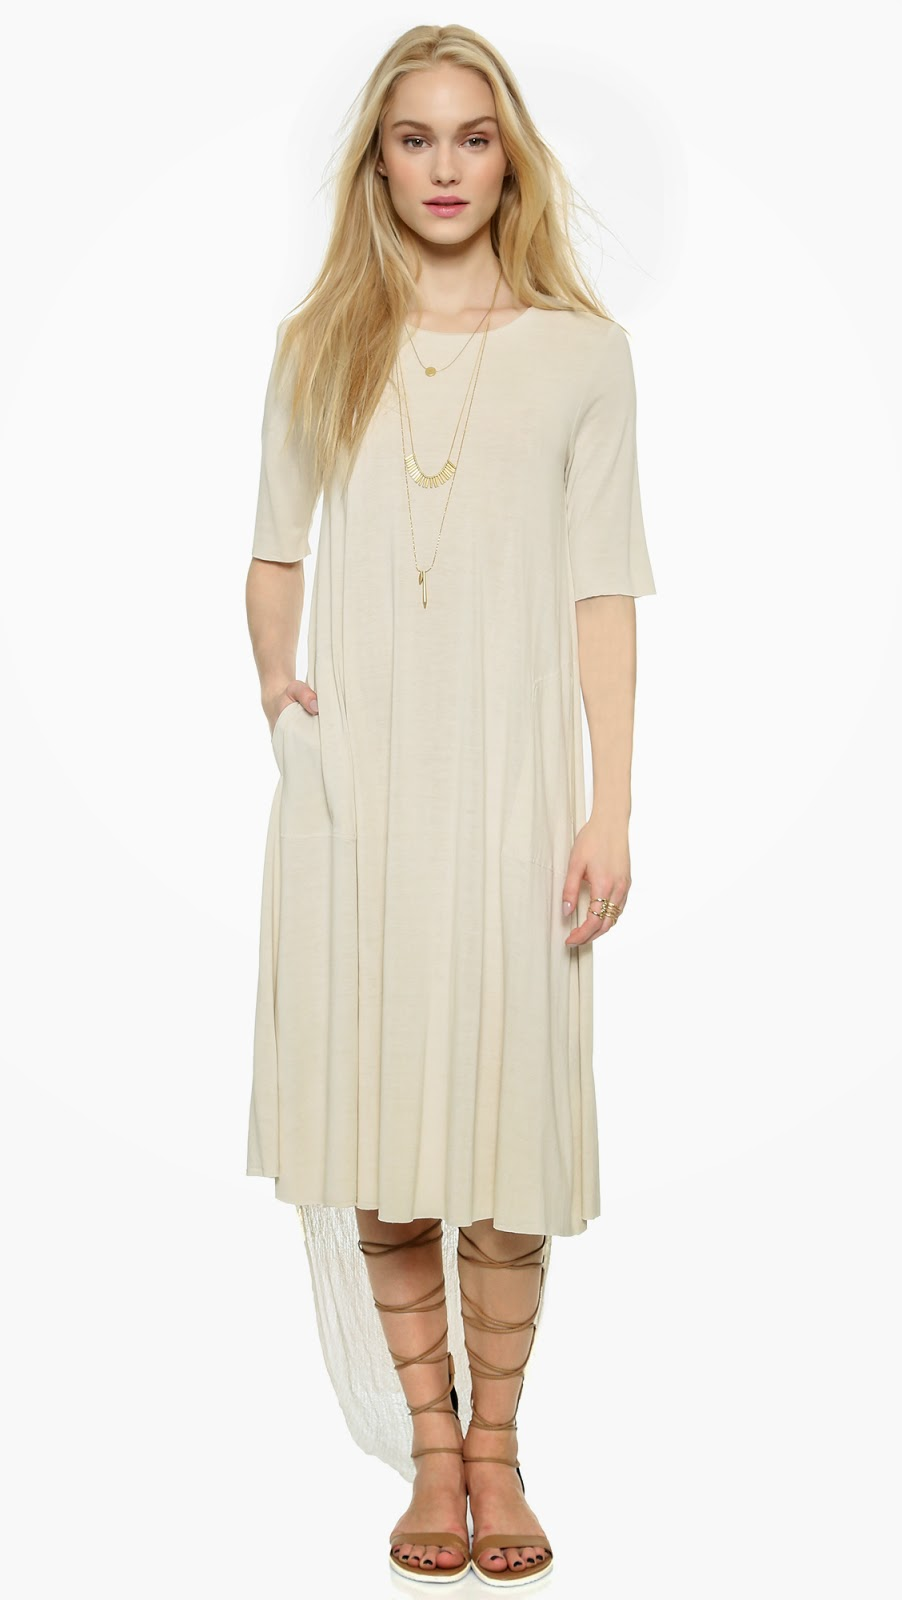 Modest relaxed t-shirt dress with sleeves | Shop Mode-sty #nolayering tznius tzniut jewish orthodox muslim islamic pentecostal mormon lds evangelical christian apostolic mission clothes Jerusalem trip hijab fashion modest muslimah hijabista